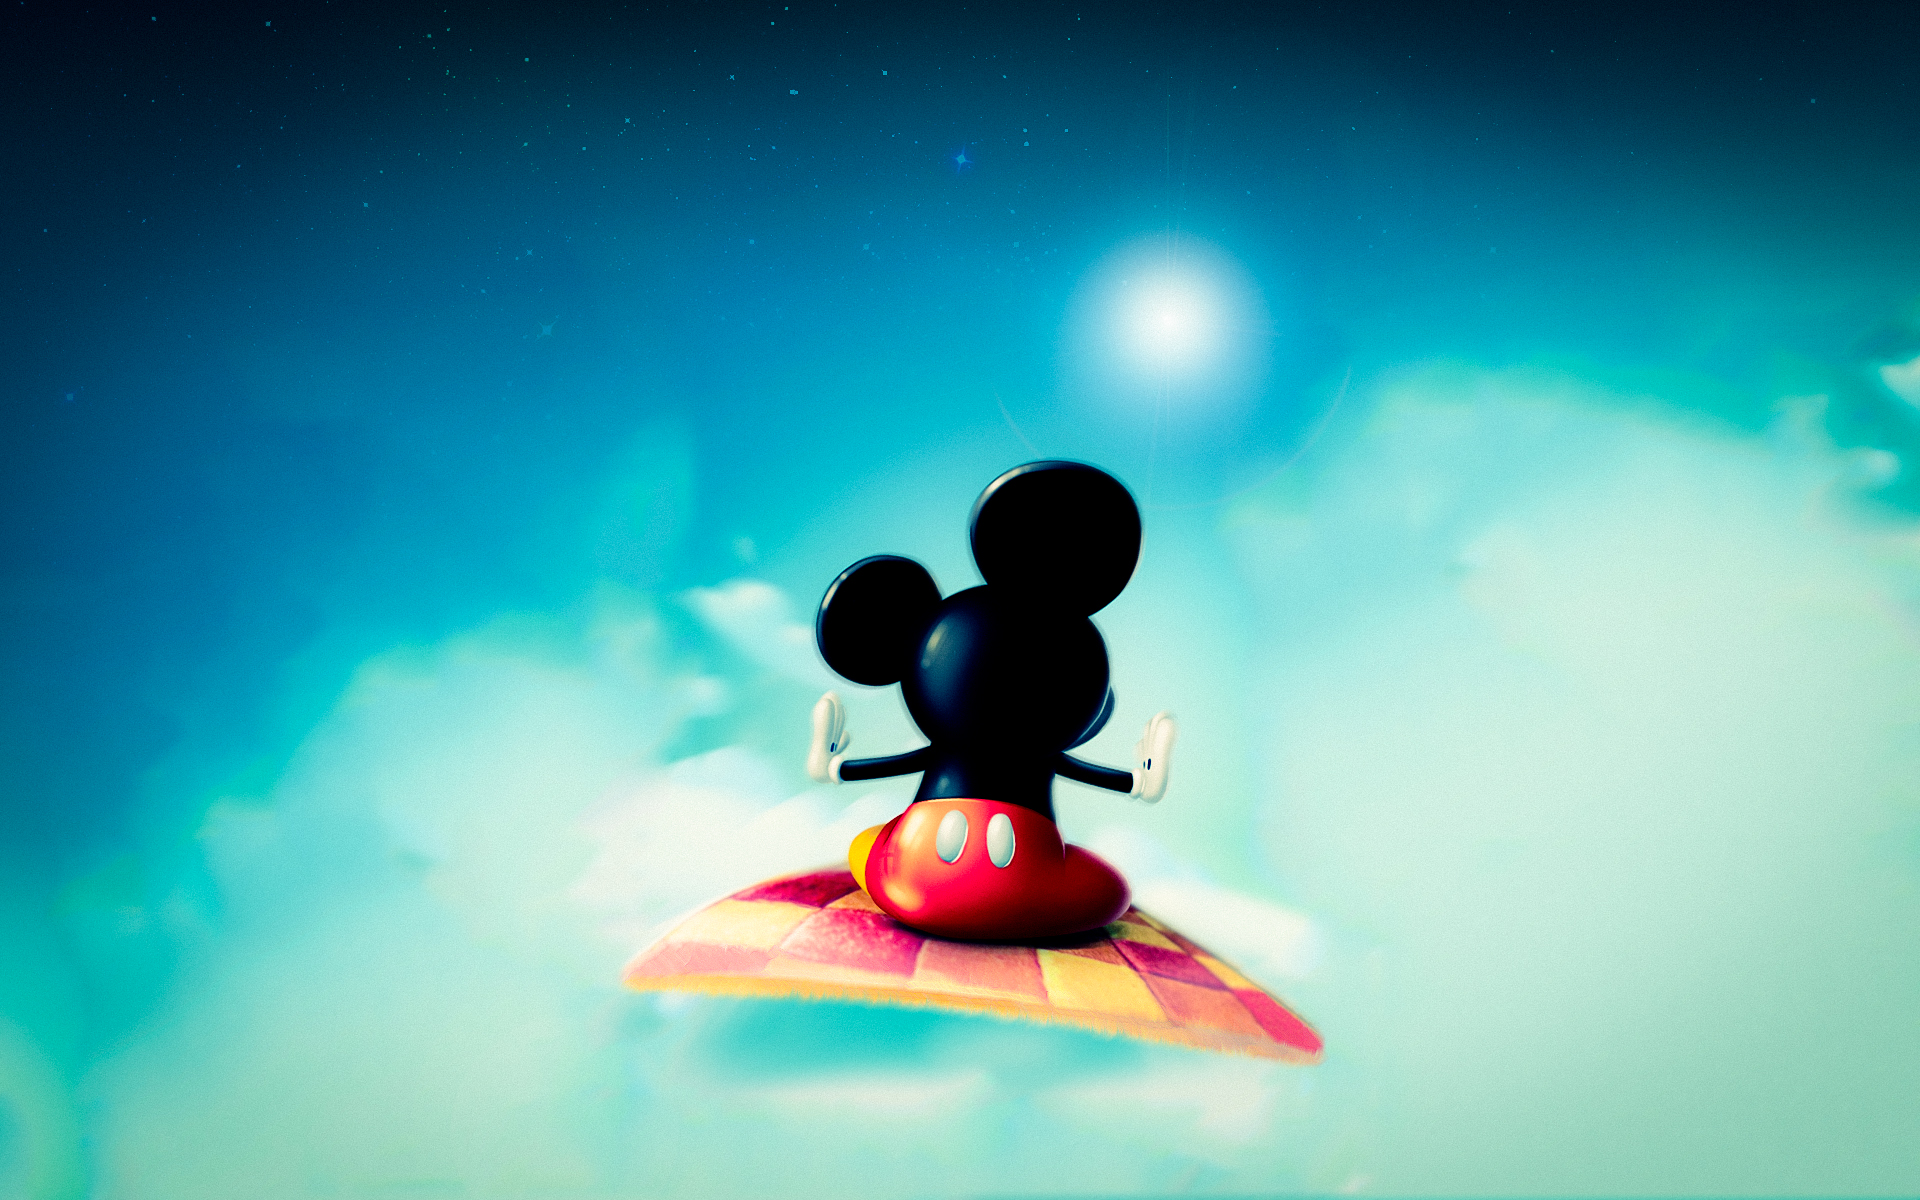 HD Wallpapers Mickey Mouse Carpet